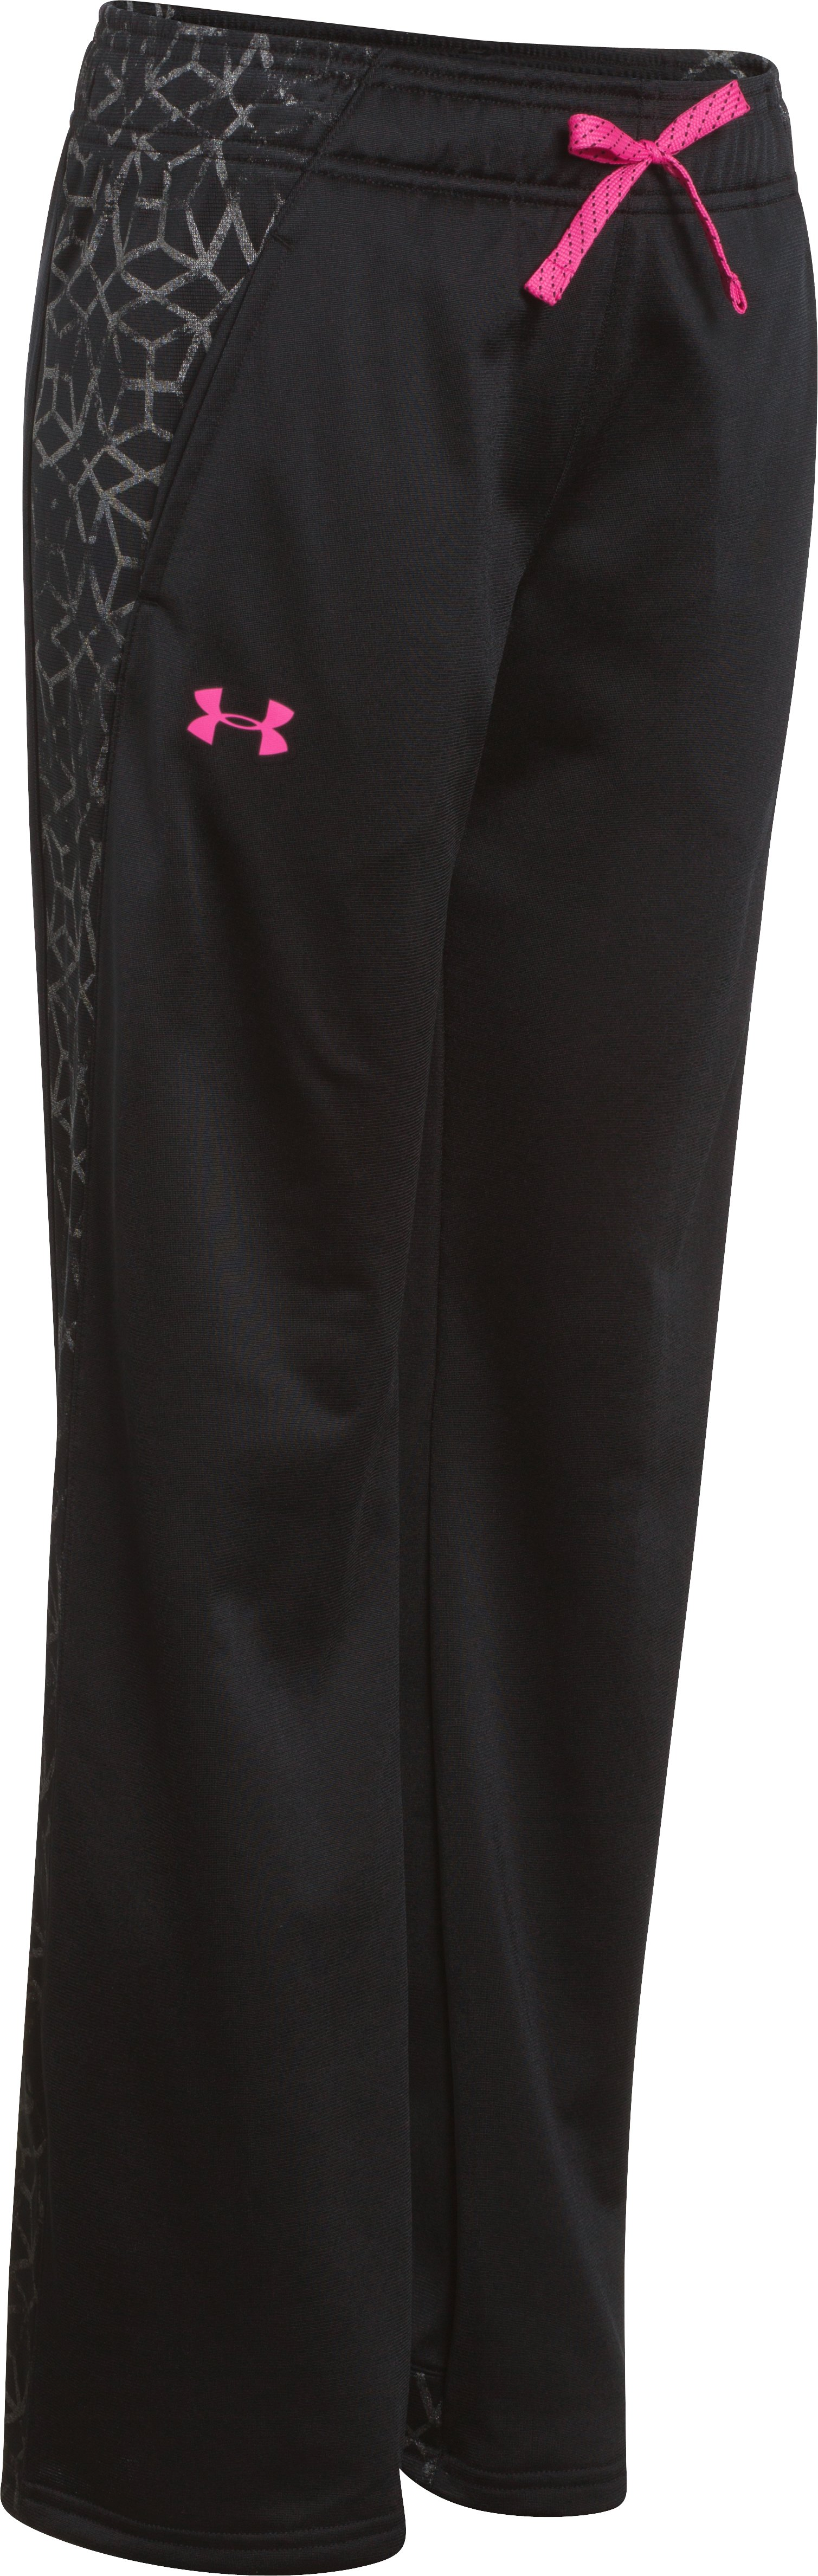 Girls' UA Collection Pant, Black